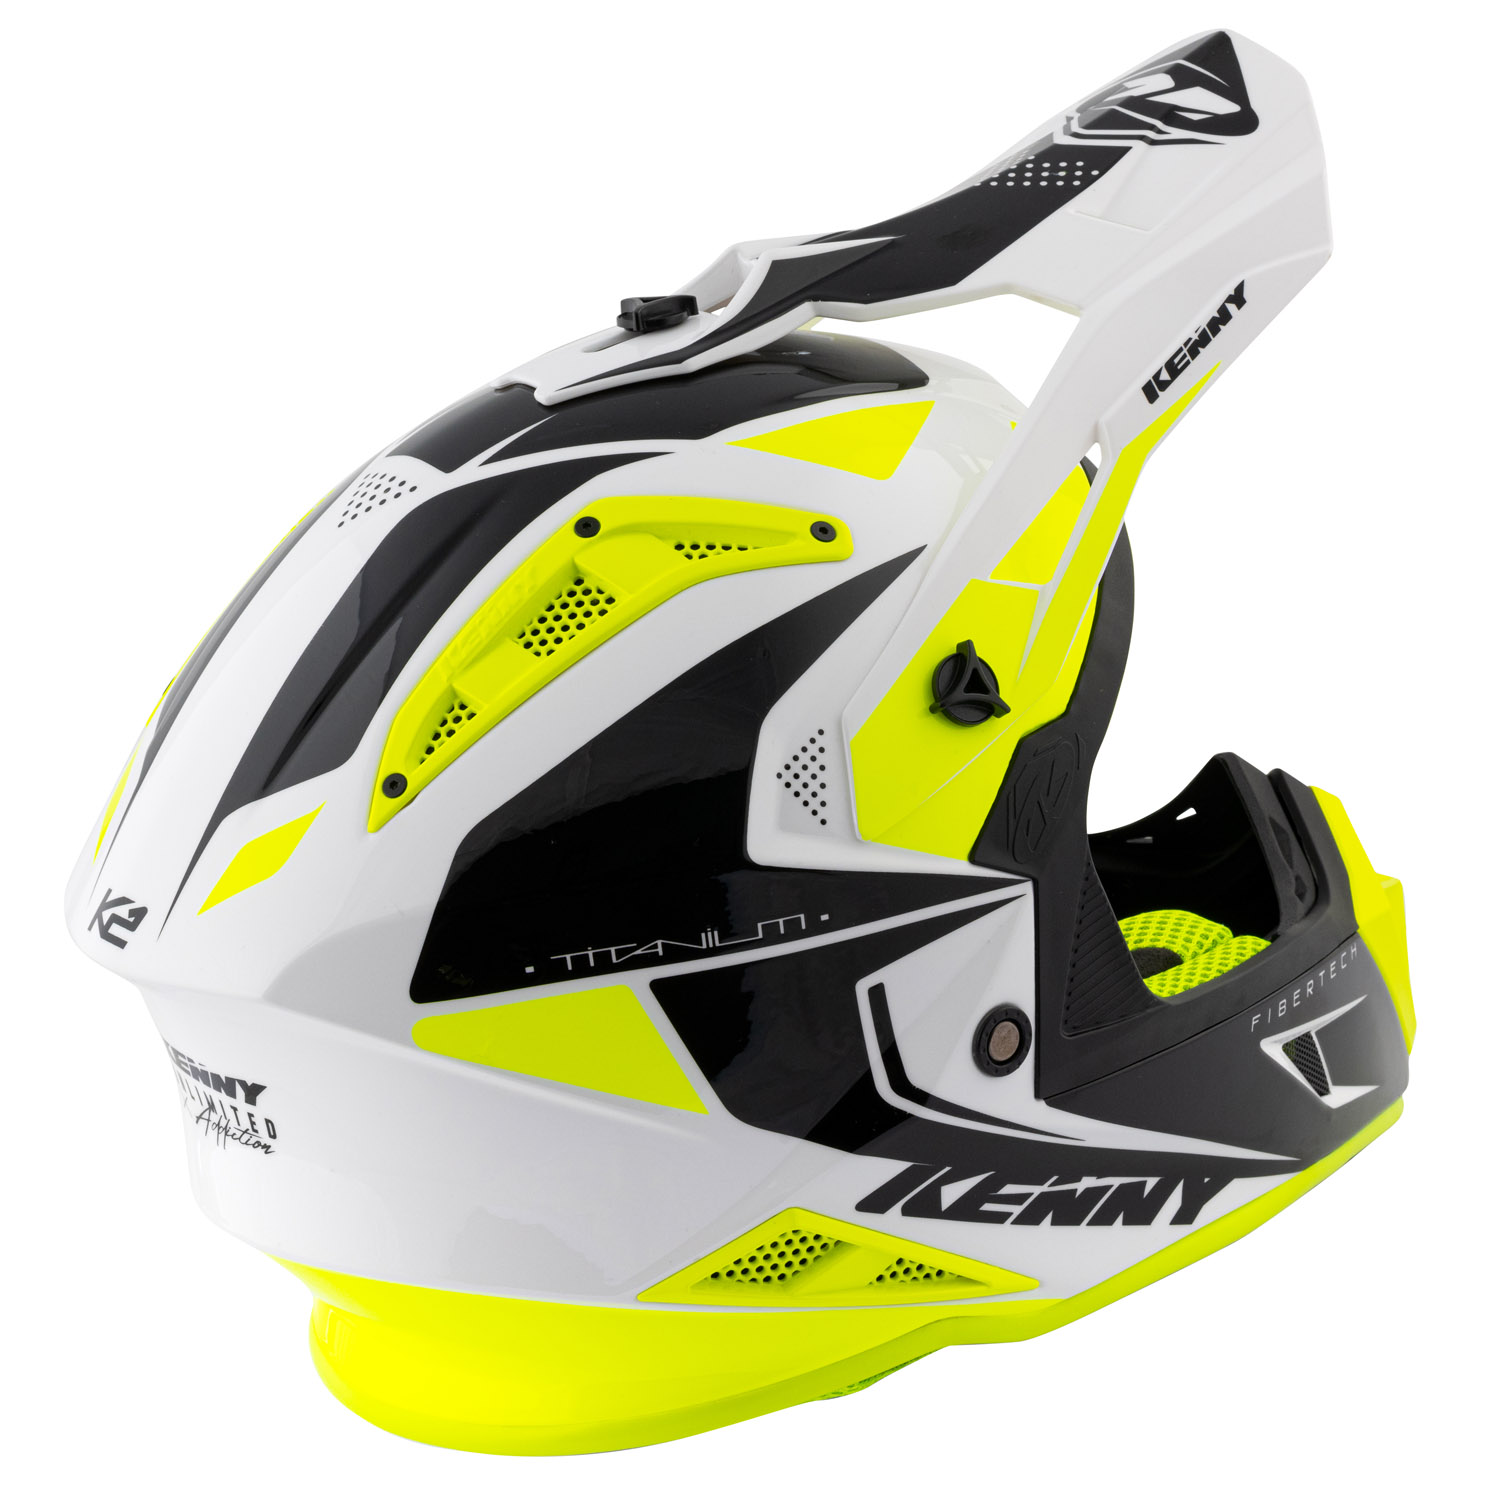 211-0505020-46 2021 Kenny Racing Titanium Helmet White Black Neon Yellow Crosshelm Casque Cross Enduro Motocross Helm